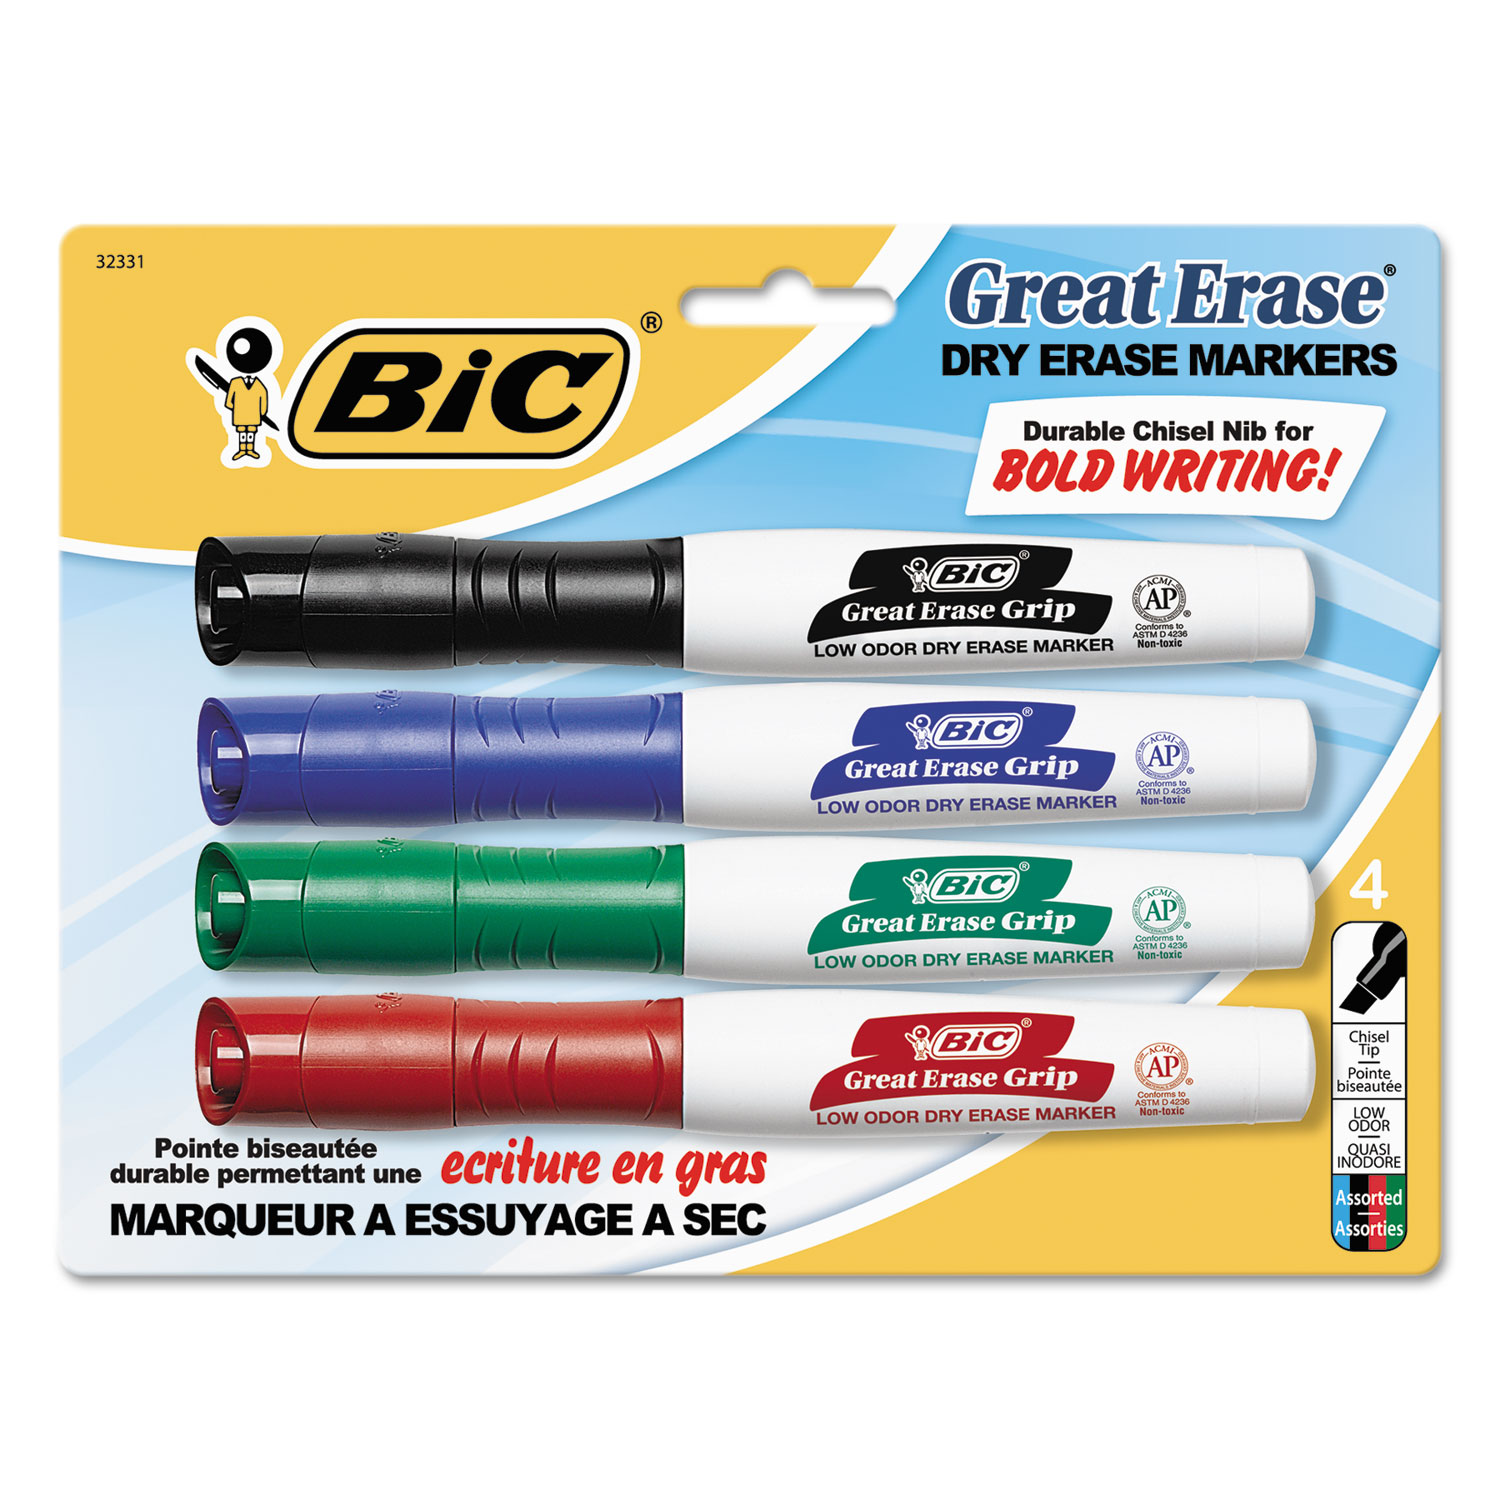 great erase grip chisel tip dry erase marker by bic bicgdemp41asst. Black Bedroom Furniture Sets. Home Design Ideas